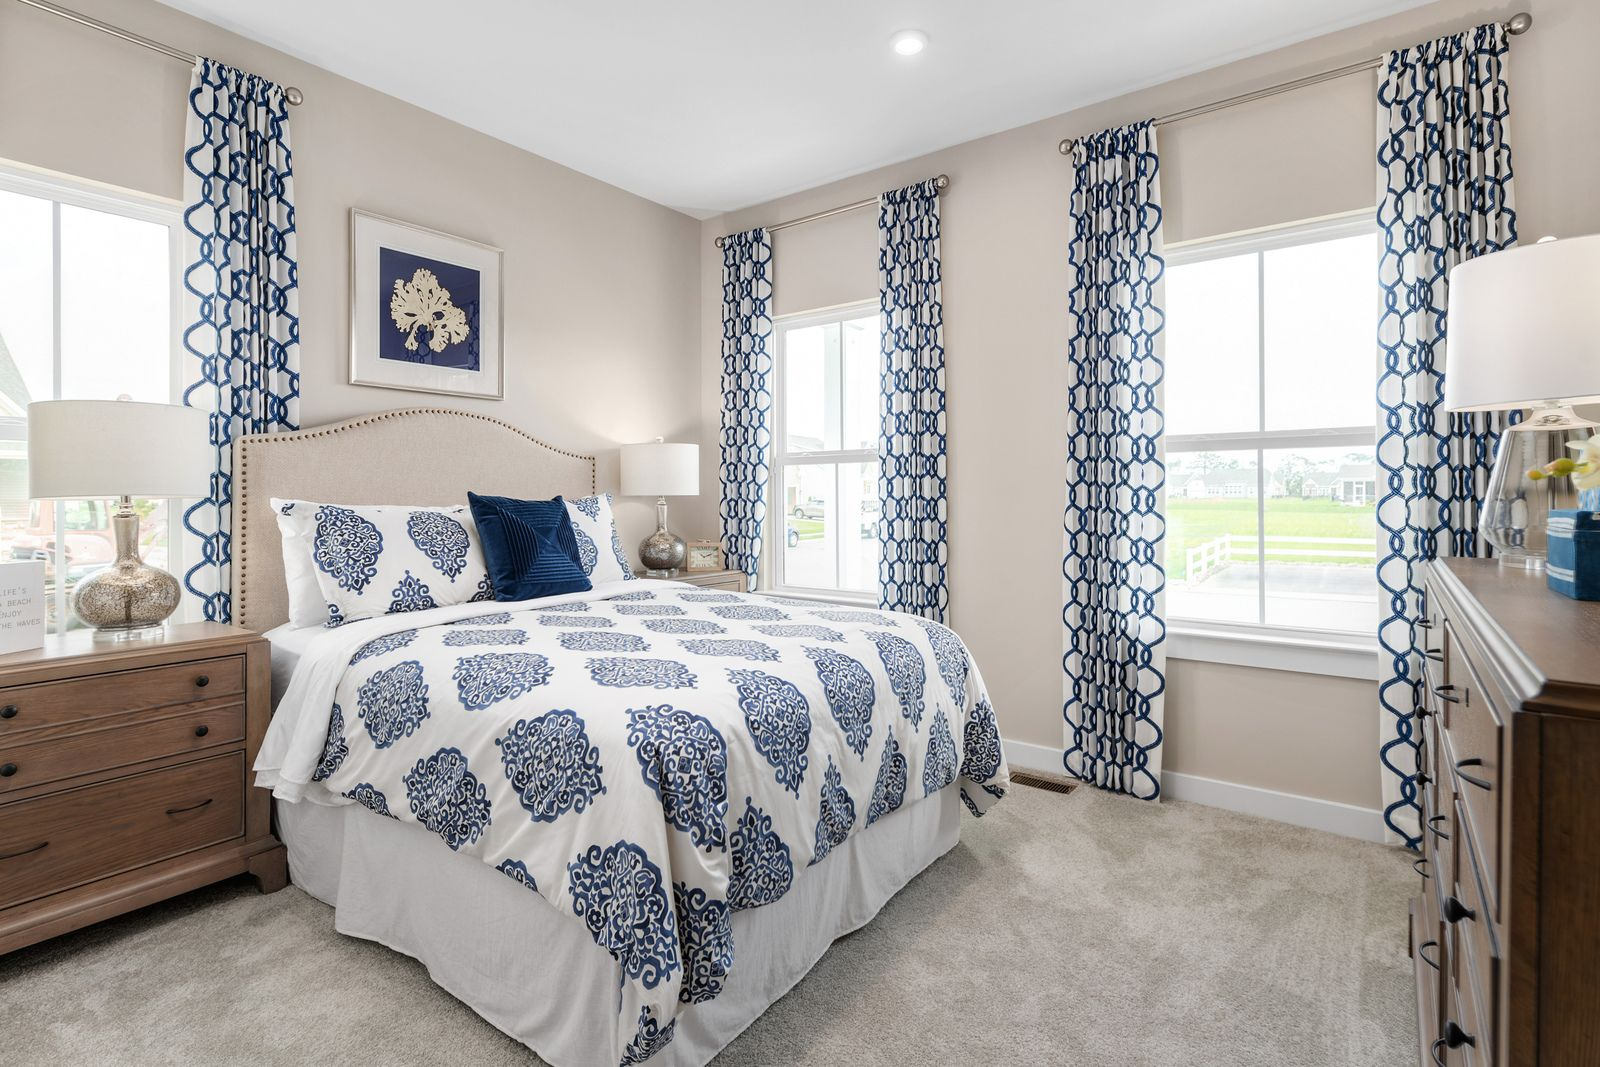 Bedroom featured in the Cumberland By Ryan Homes in Washington, MD